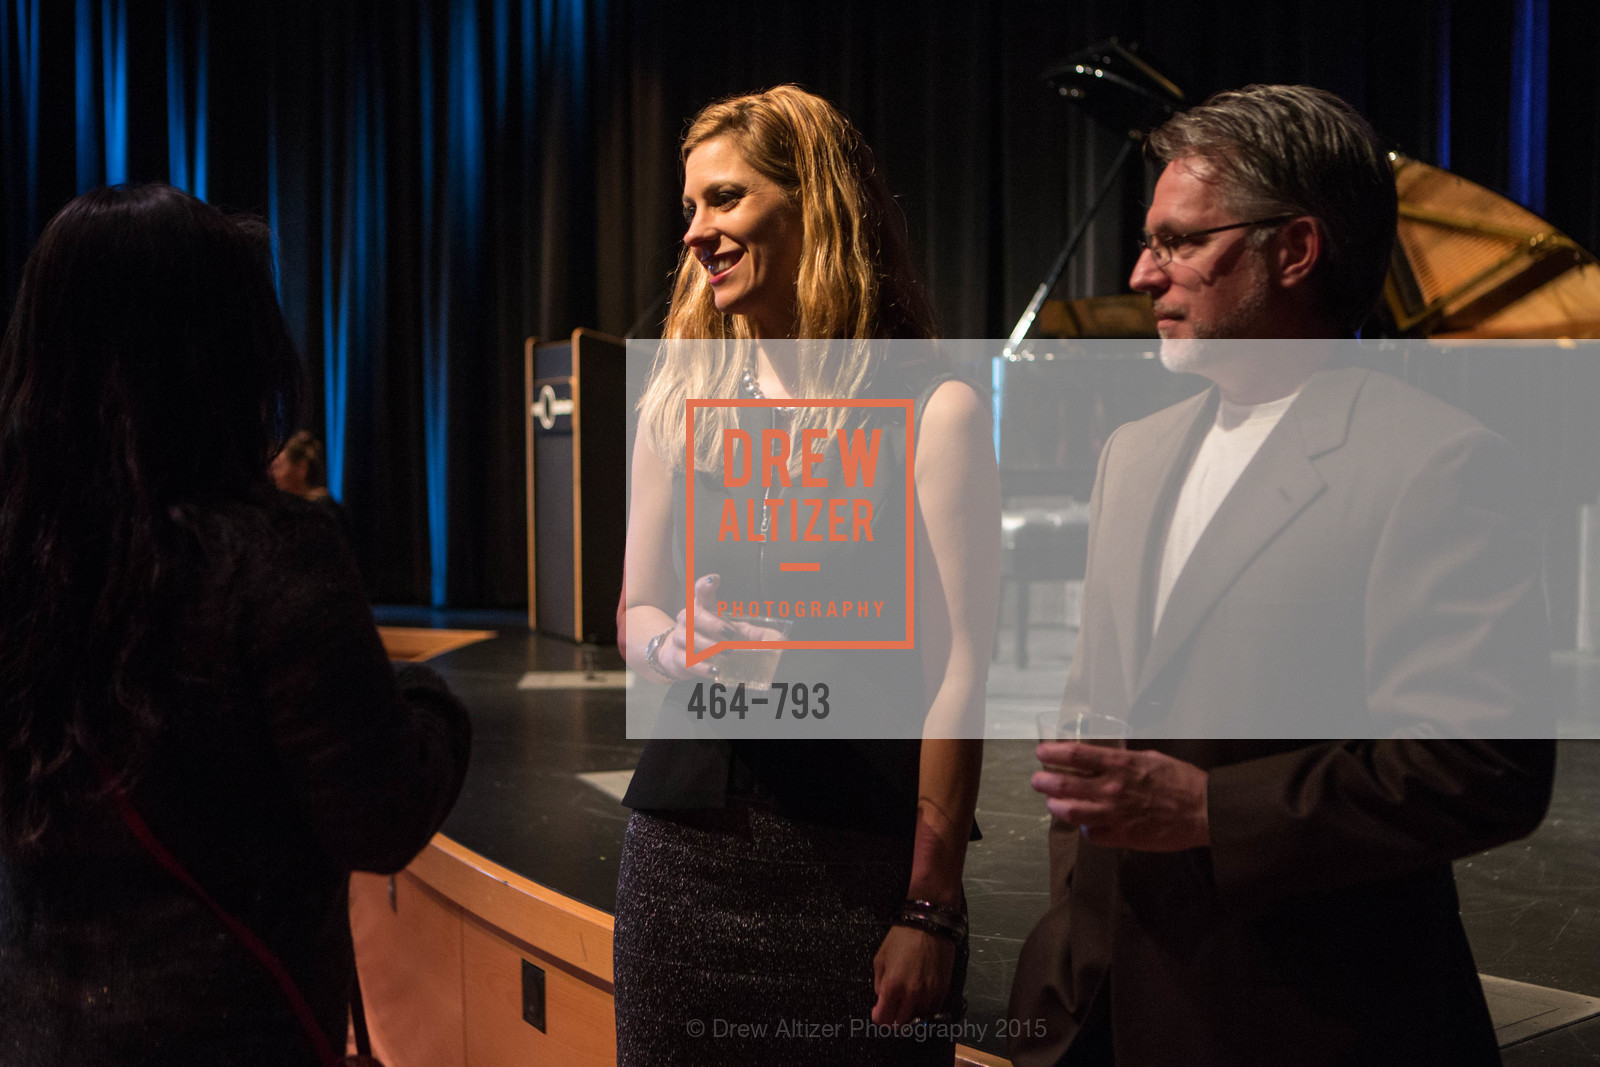 Johnna Marcus, Andreas Papalilous, SF BRAVO CLUB Sneak Peek at the EXPLORATORIUM, US, April 23rd, 2015,Drew Altizer, Drew Altizer Photography, full-service agency, private events, San Francisco photographer, photographer california